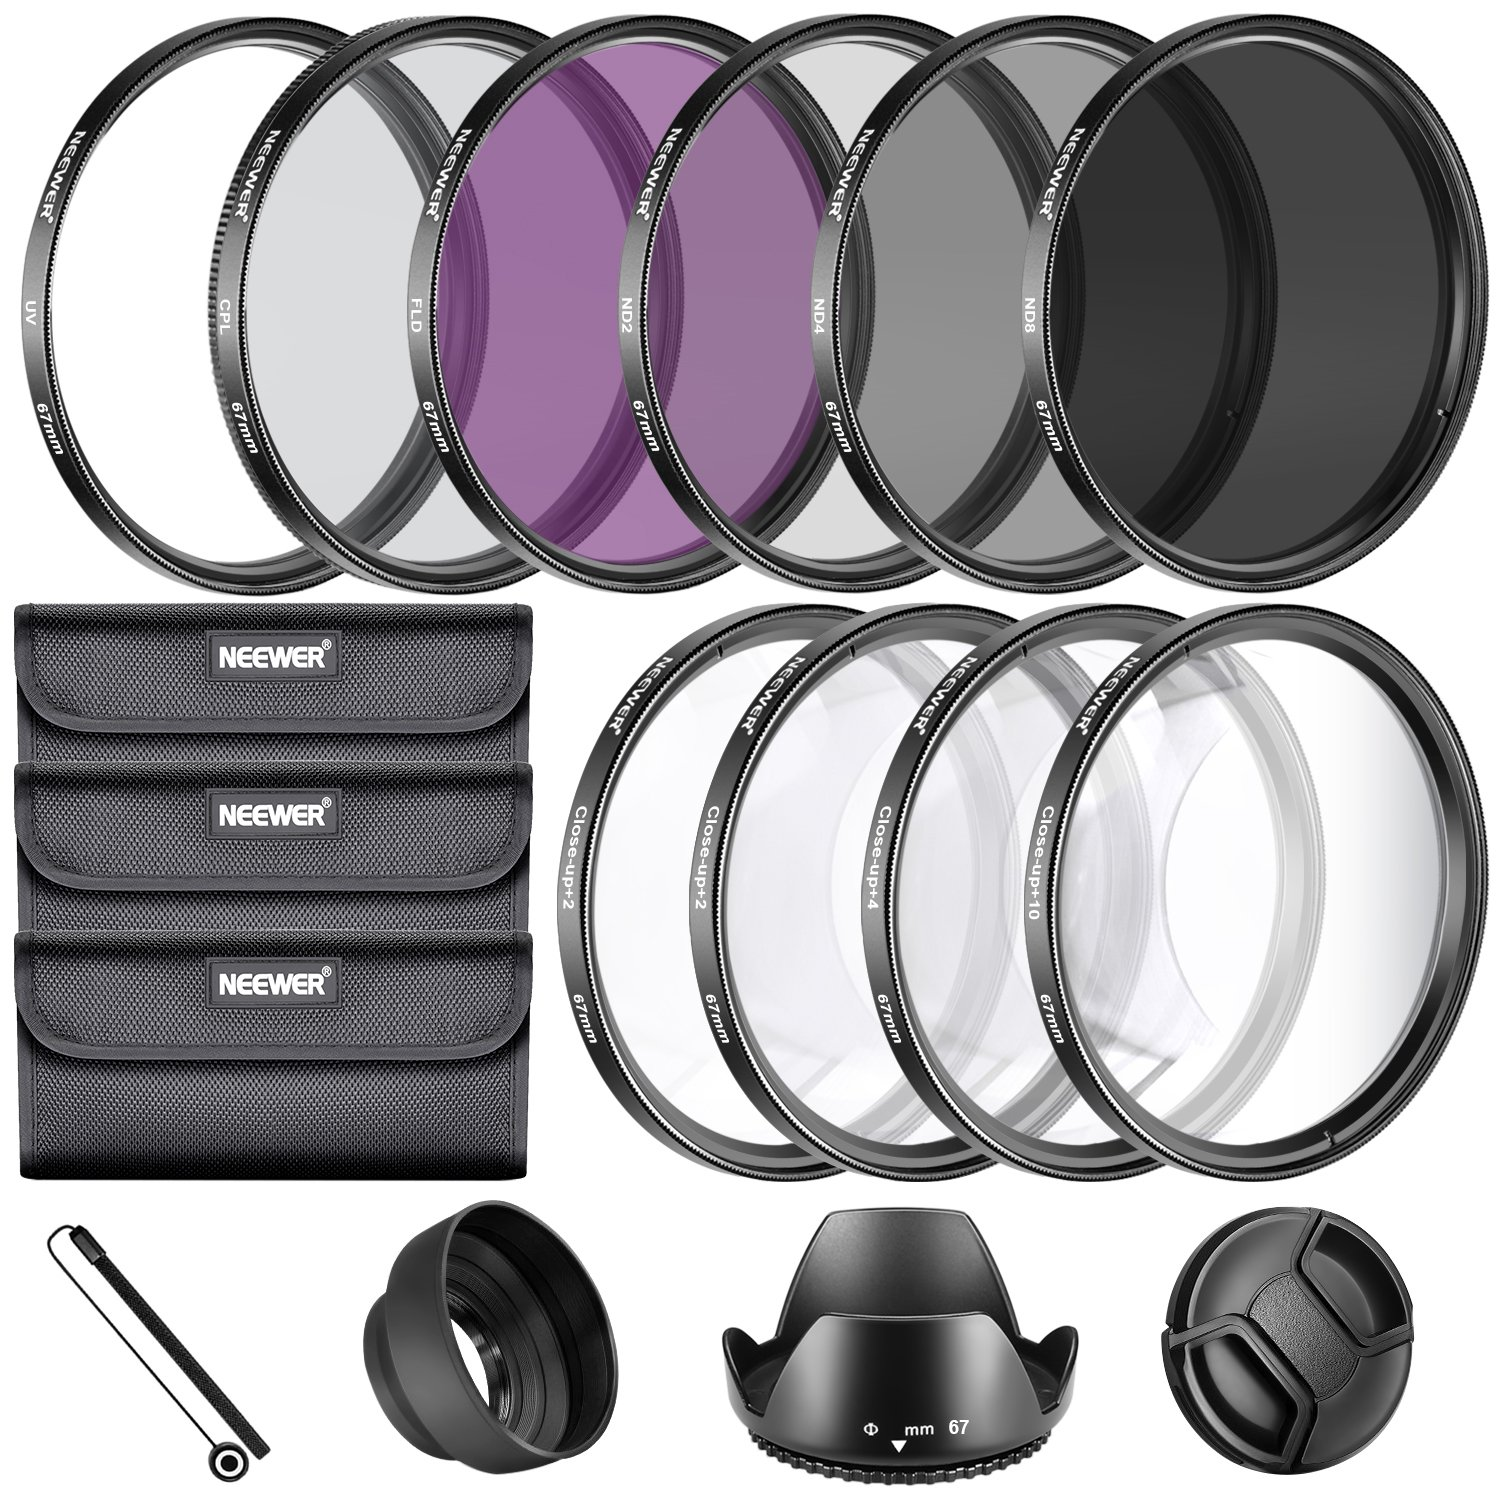 Neewer 67MM Complete Lens Filter Accessory Kit for Lenses with 67MM Filter Size: UV CPL FLD Filter Set + Macro Close Up Set (+1 +2 +4 +10) + ND Filter Set (ND2 ND4 ND8) + Other by Neewer